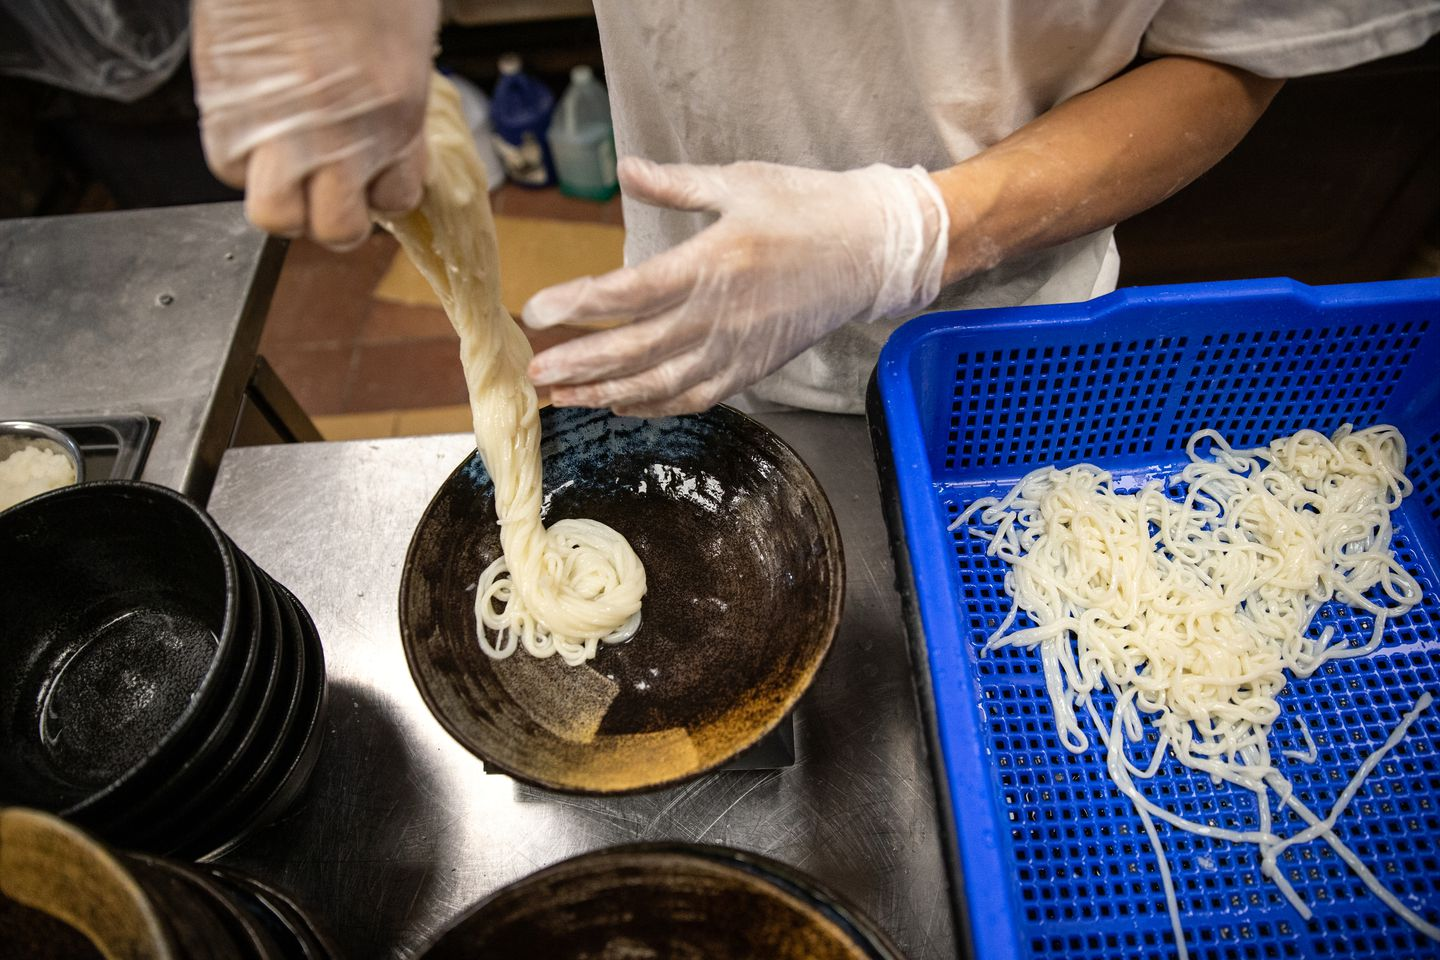 Yume Ga Arukara head chef Tomohiro Shinoda served udon noodles in Cambridge.